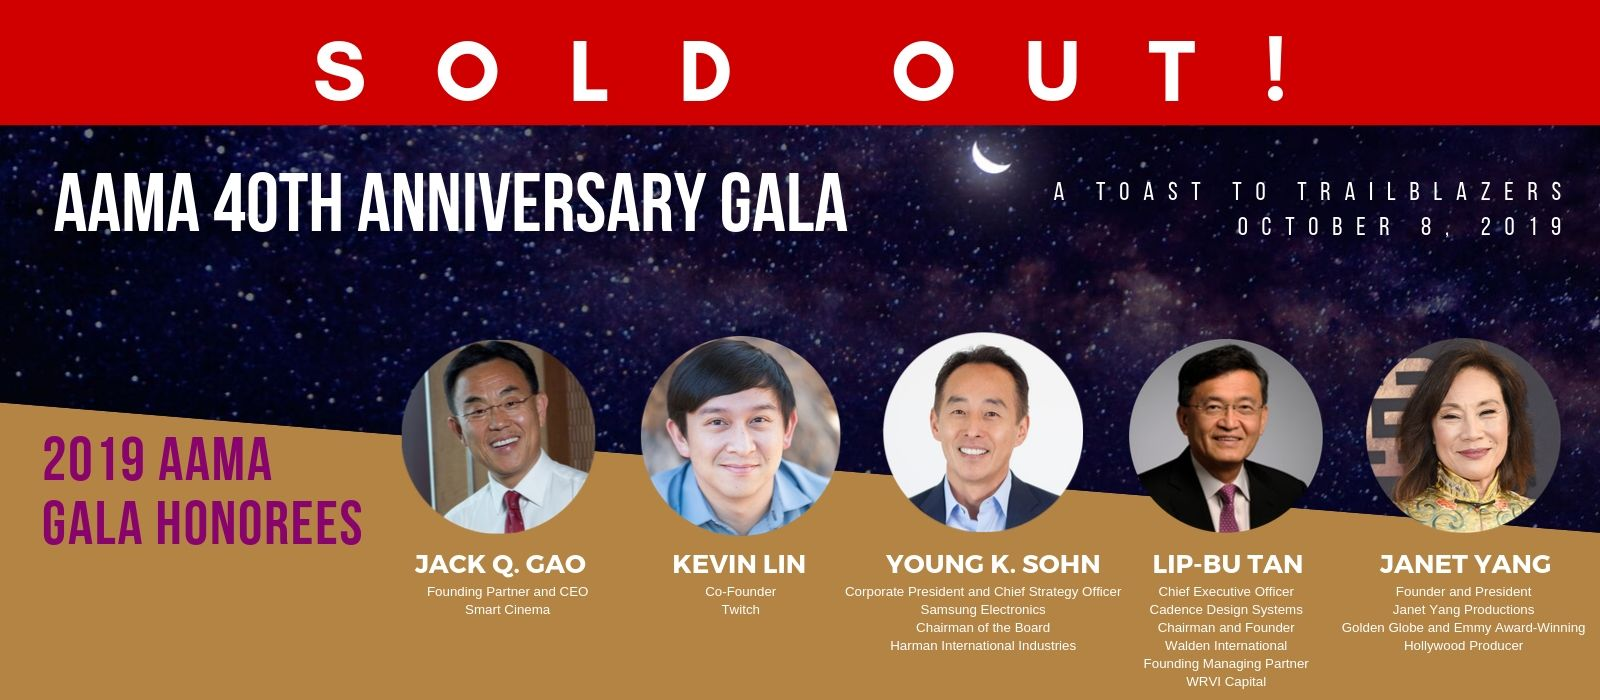 AAMA 40th Anniversary Gala - October 8, 2019